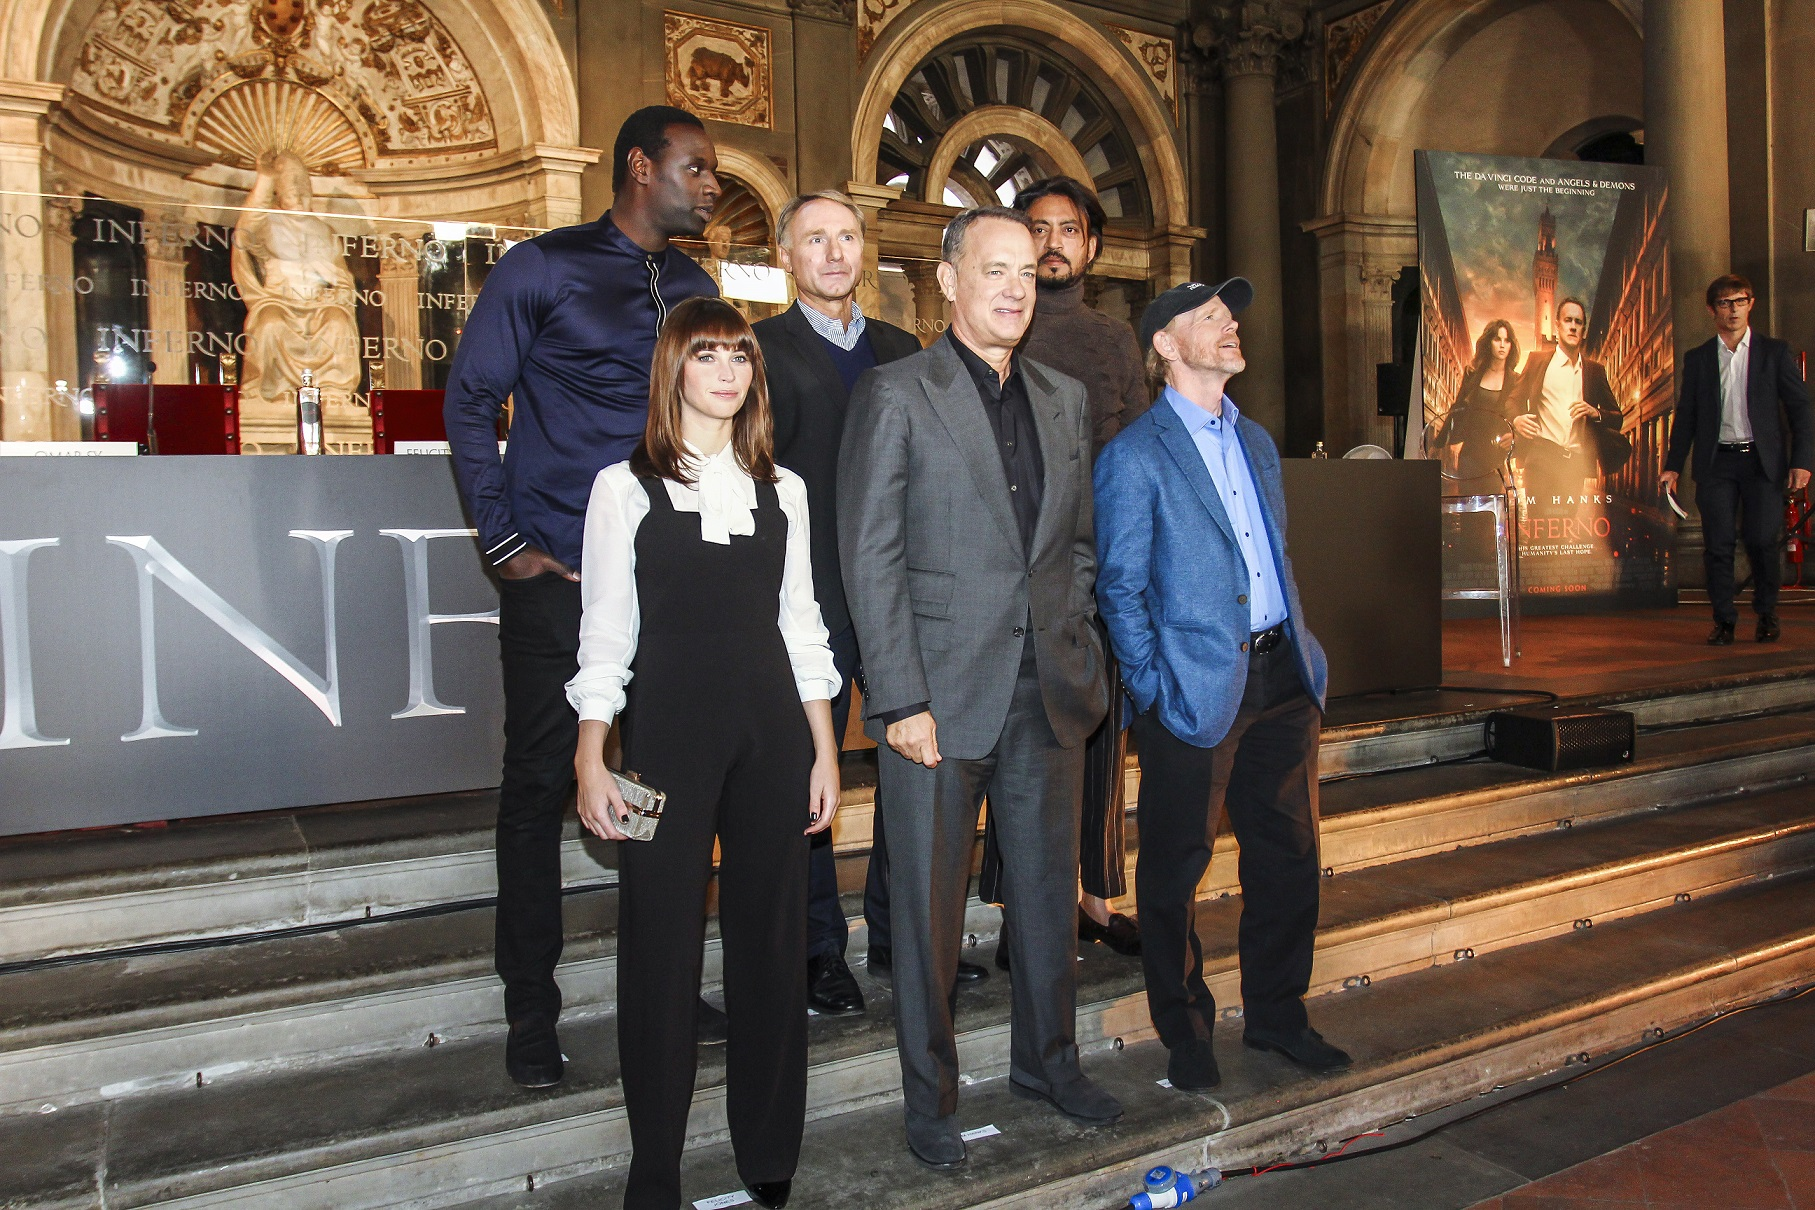 Inferno con Tom Hanks e Felicity Jones, foto